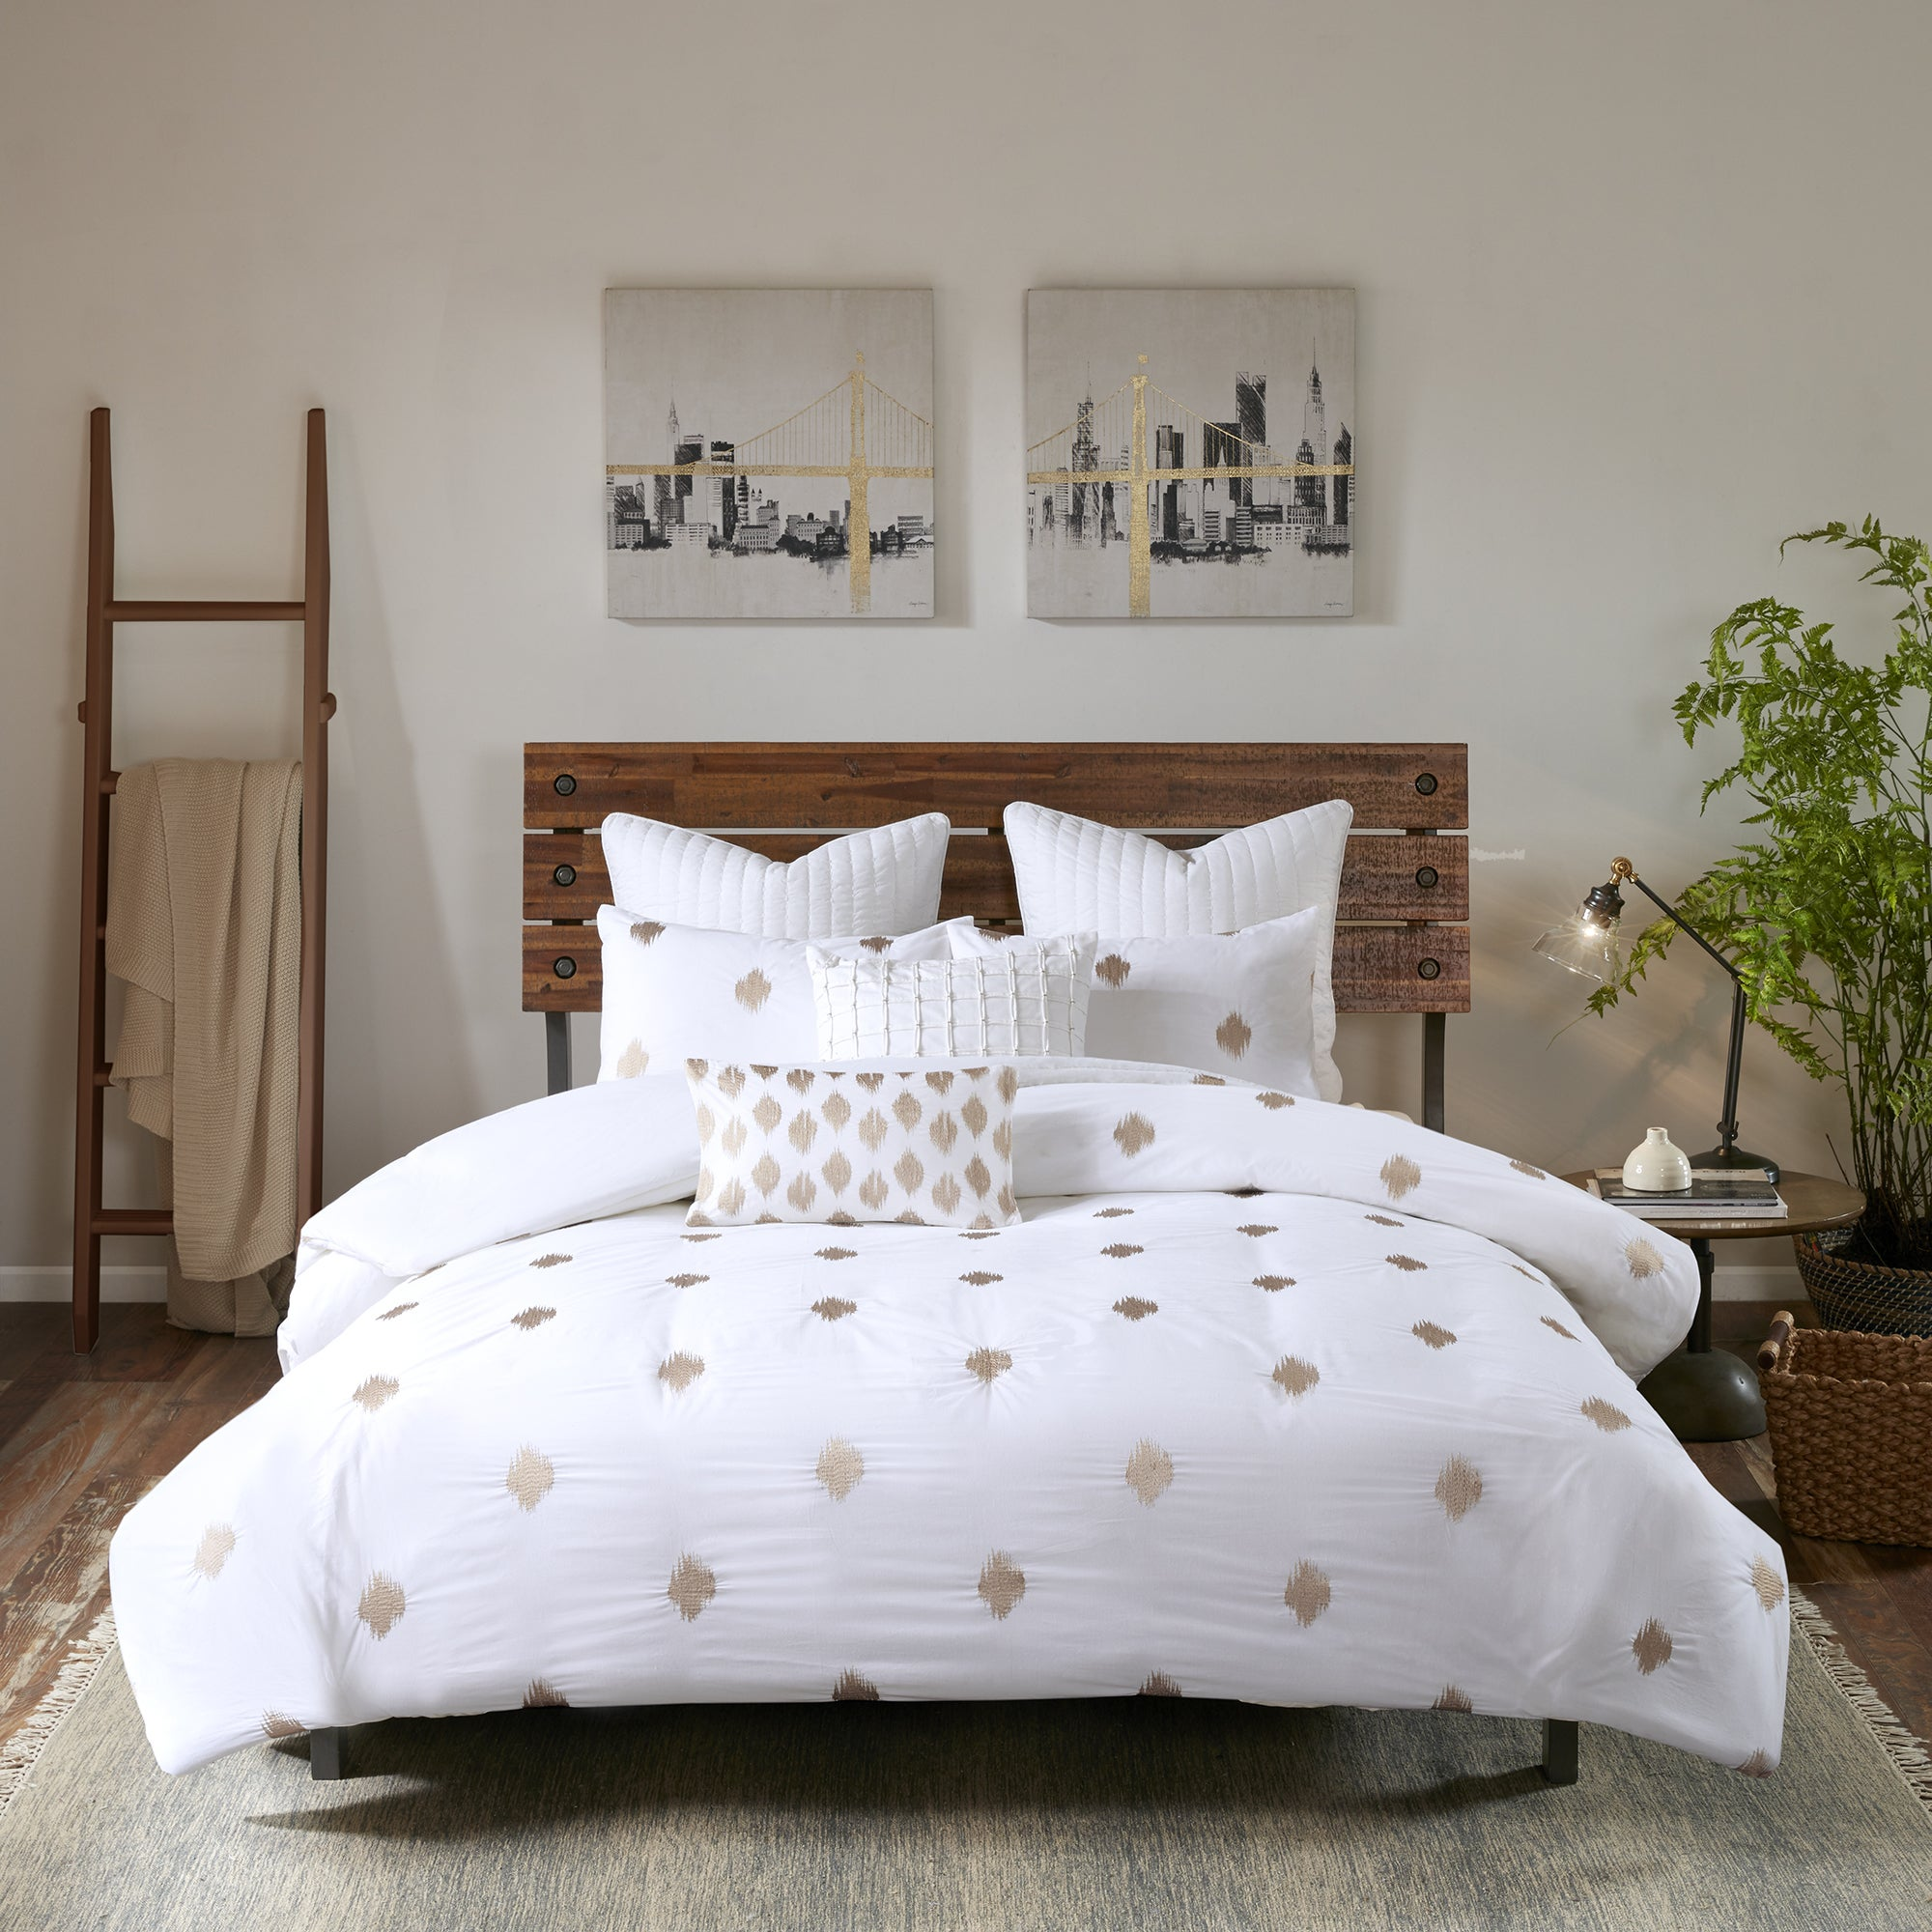 Ink Ivy Stella Dot Copper White Cotton Percale Duvet Cover 3 Piece Set With Metallic Embroidery